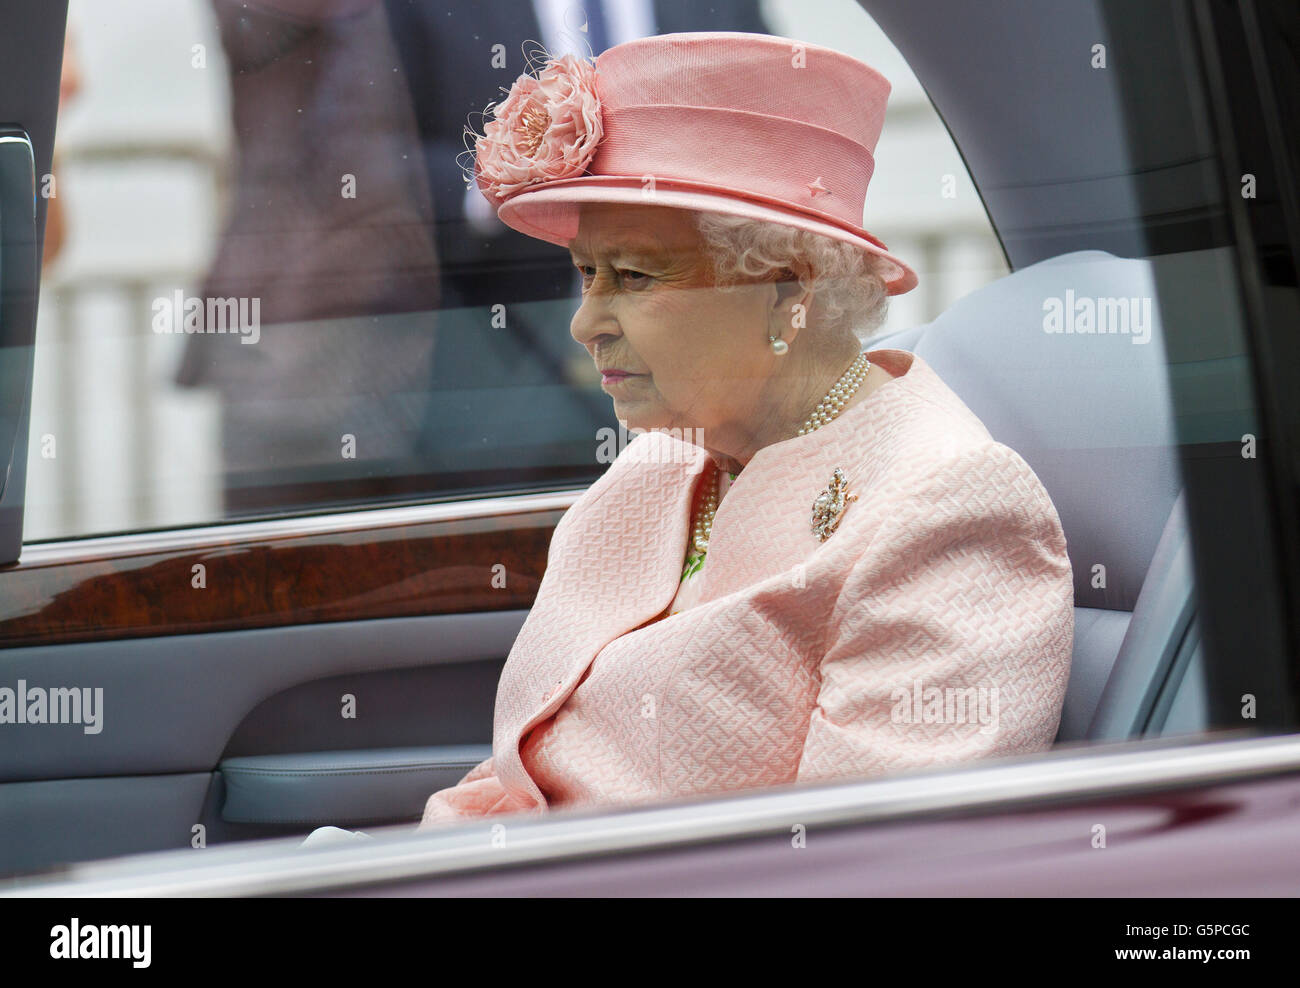 Liverpool, Merseyside, UK. 22 Jun 2106.  Queen opens Exhibition Centre.  Her Majesty The Queen opens the new Liverpool - Stock Image